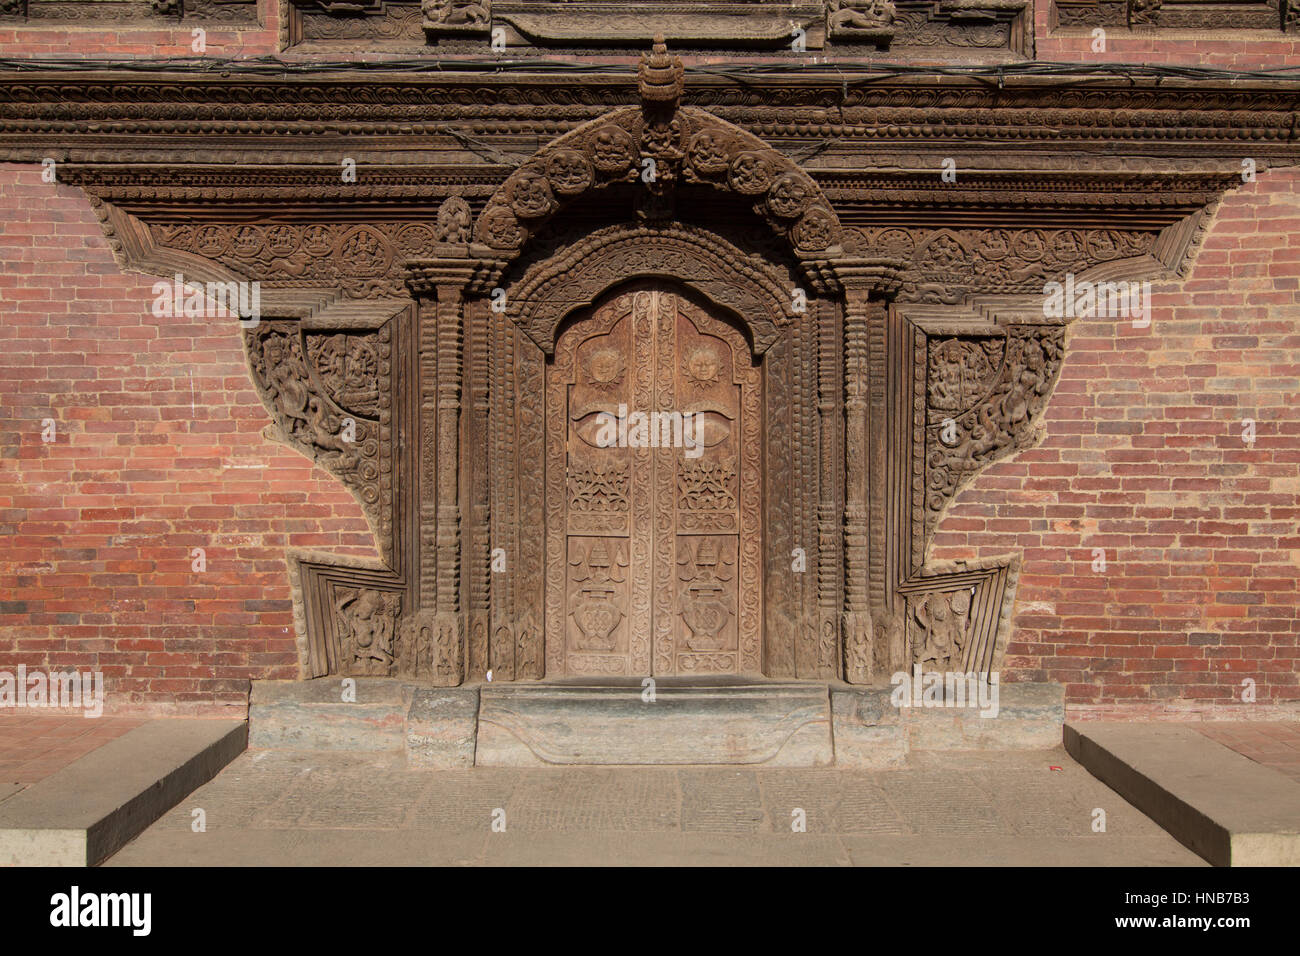 A richly carved wooden door adorned with figures of Hindu gods and celestial creatures on a brick building in Bhaktapur, - Stock Image